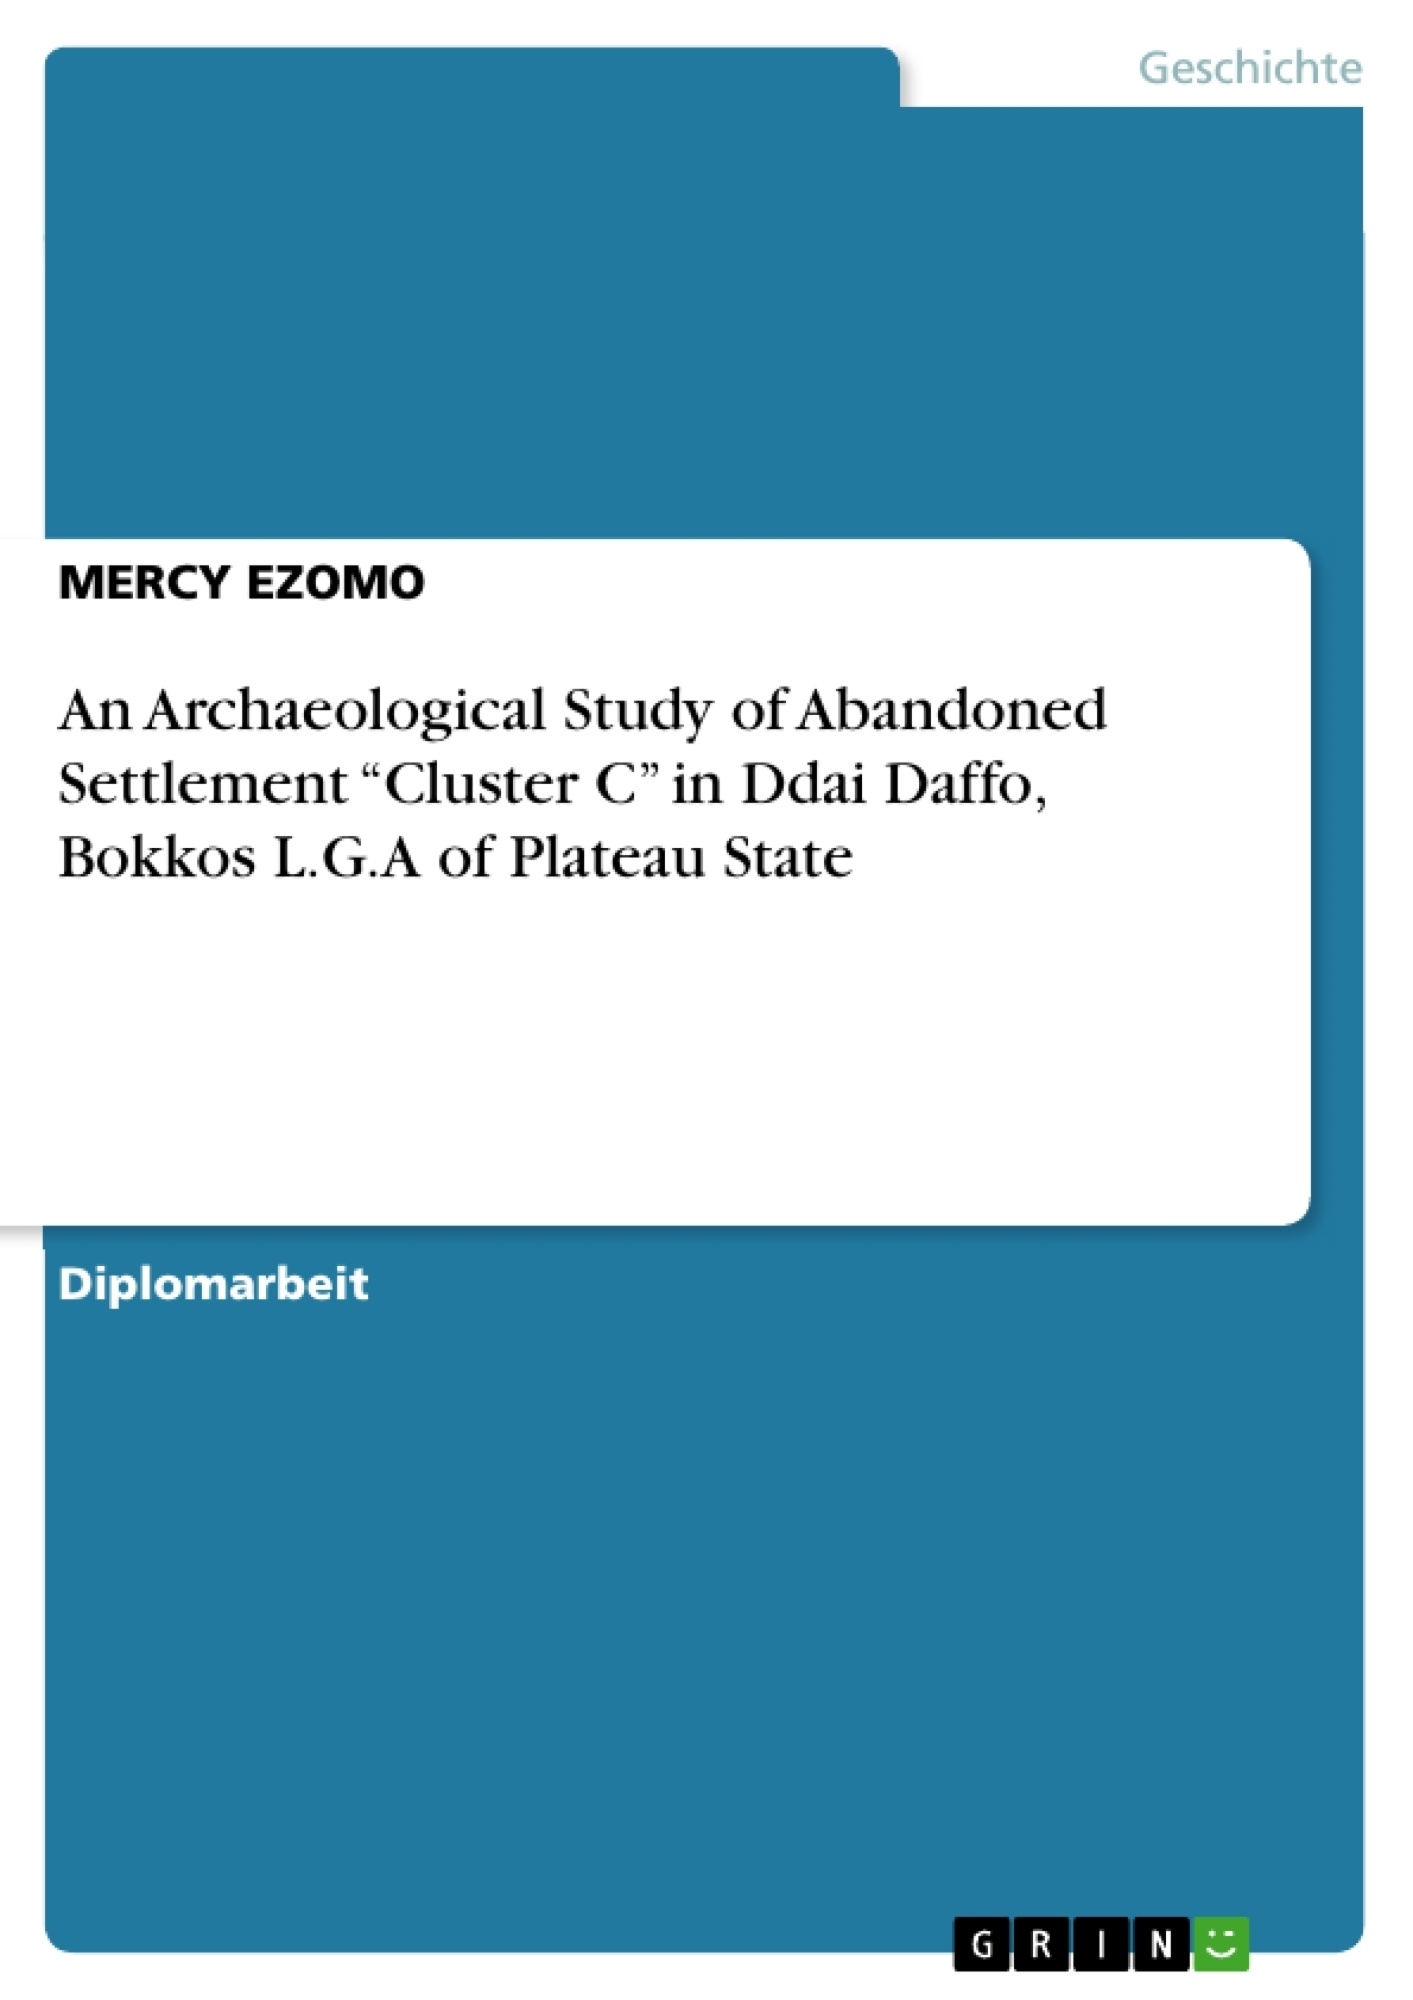 "Titel: An Archaeological Study of Abandoned Settlement ""Cluster C"" in Ddai Daffo, Bokkos L.G.A of Plateau State"